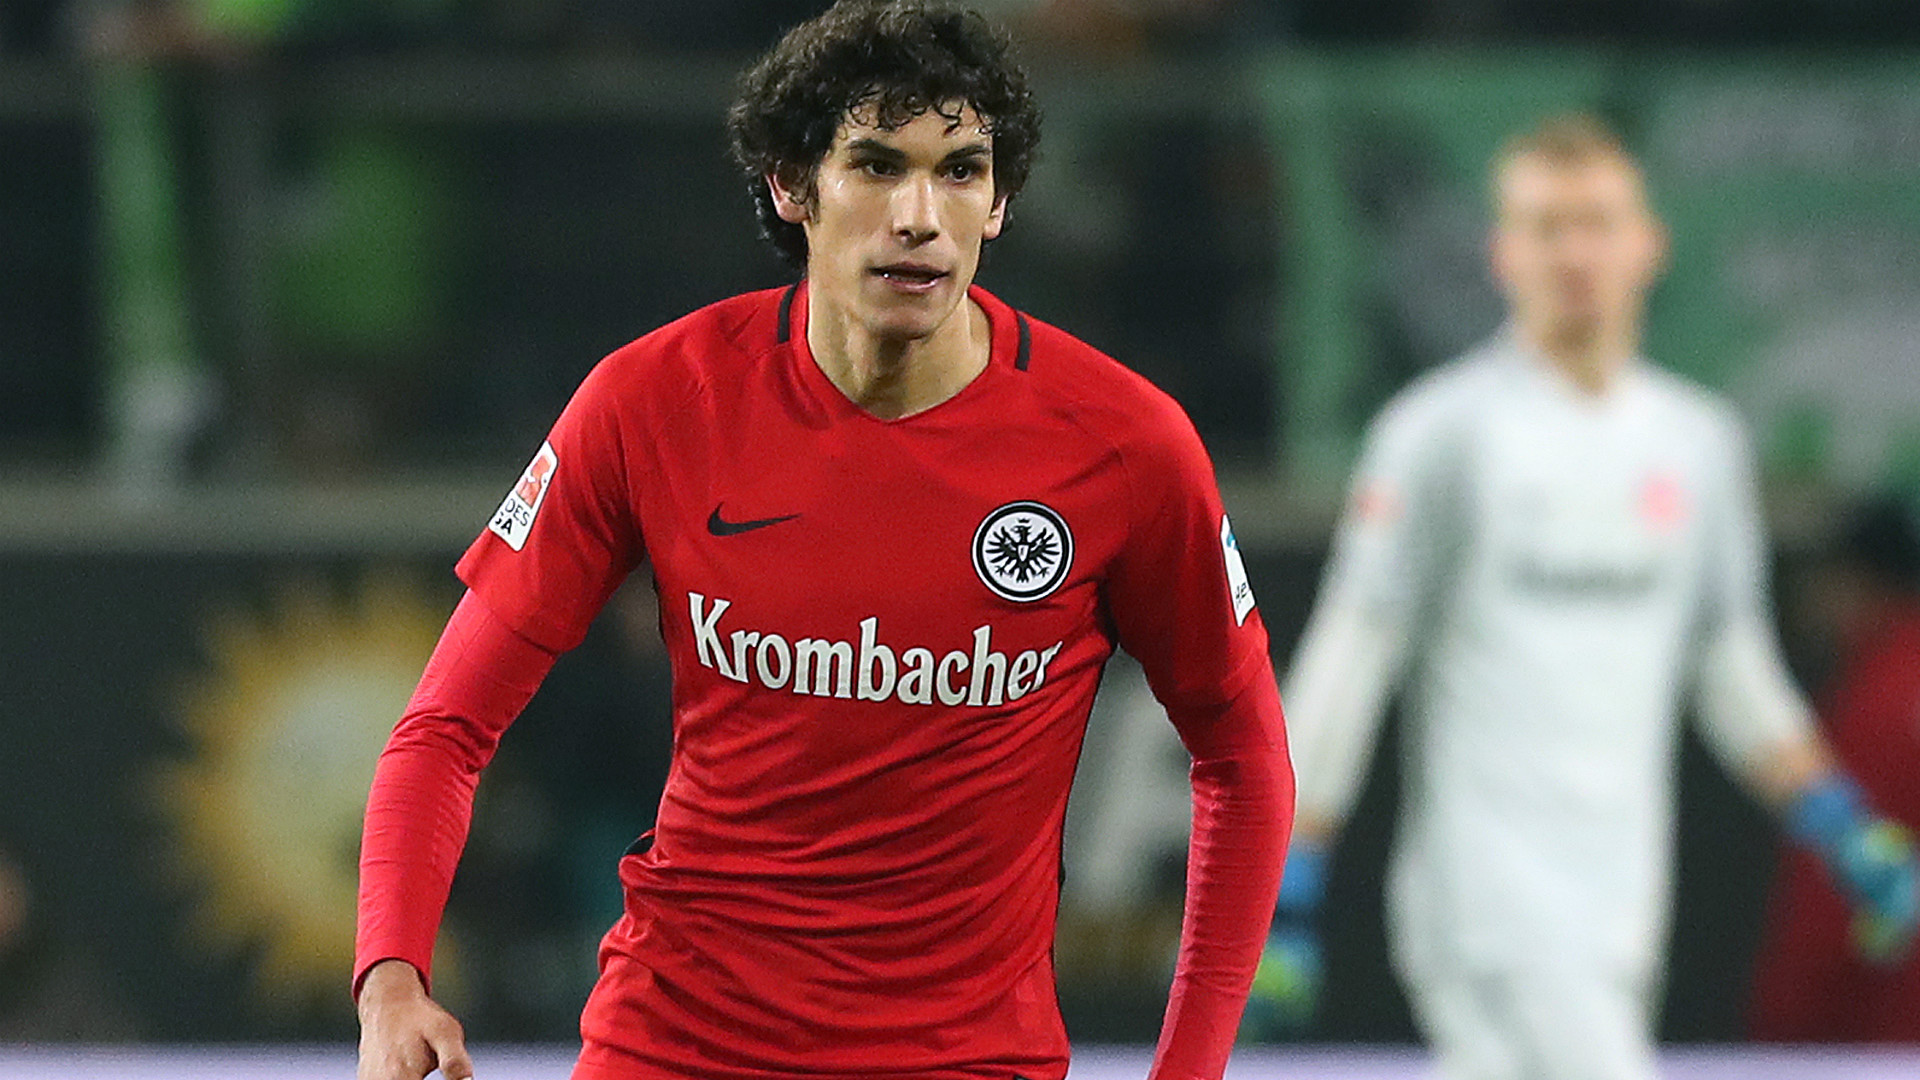 El Real Madrid contratará al defensa Jesús Vallejo